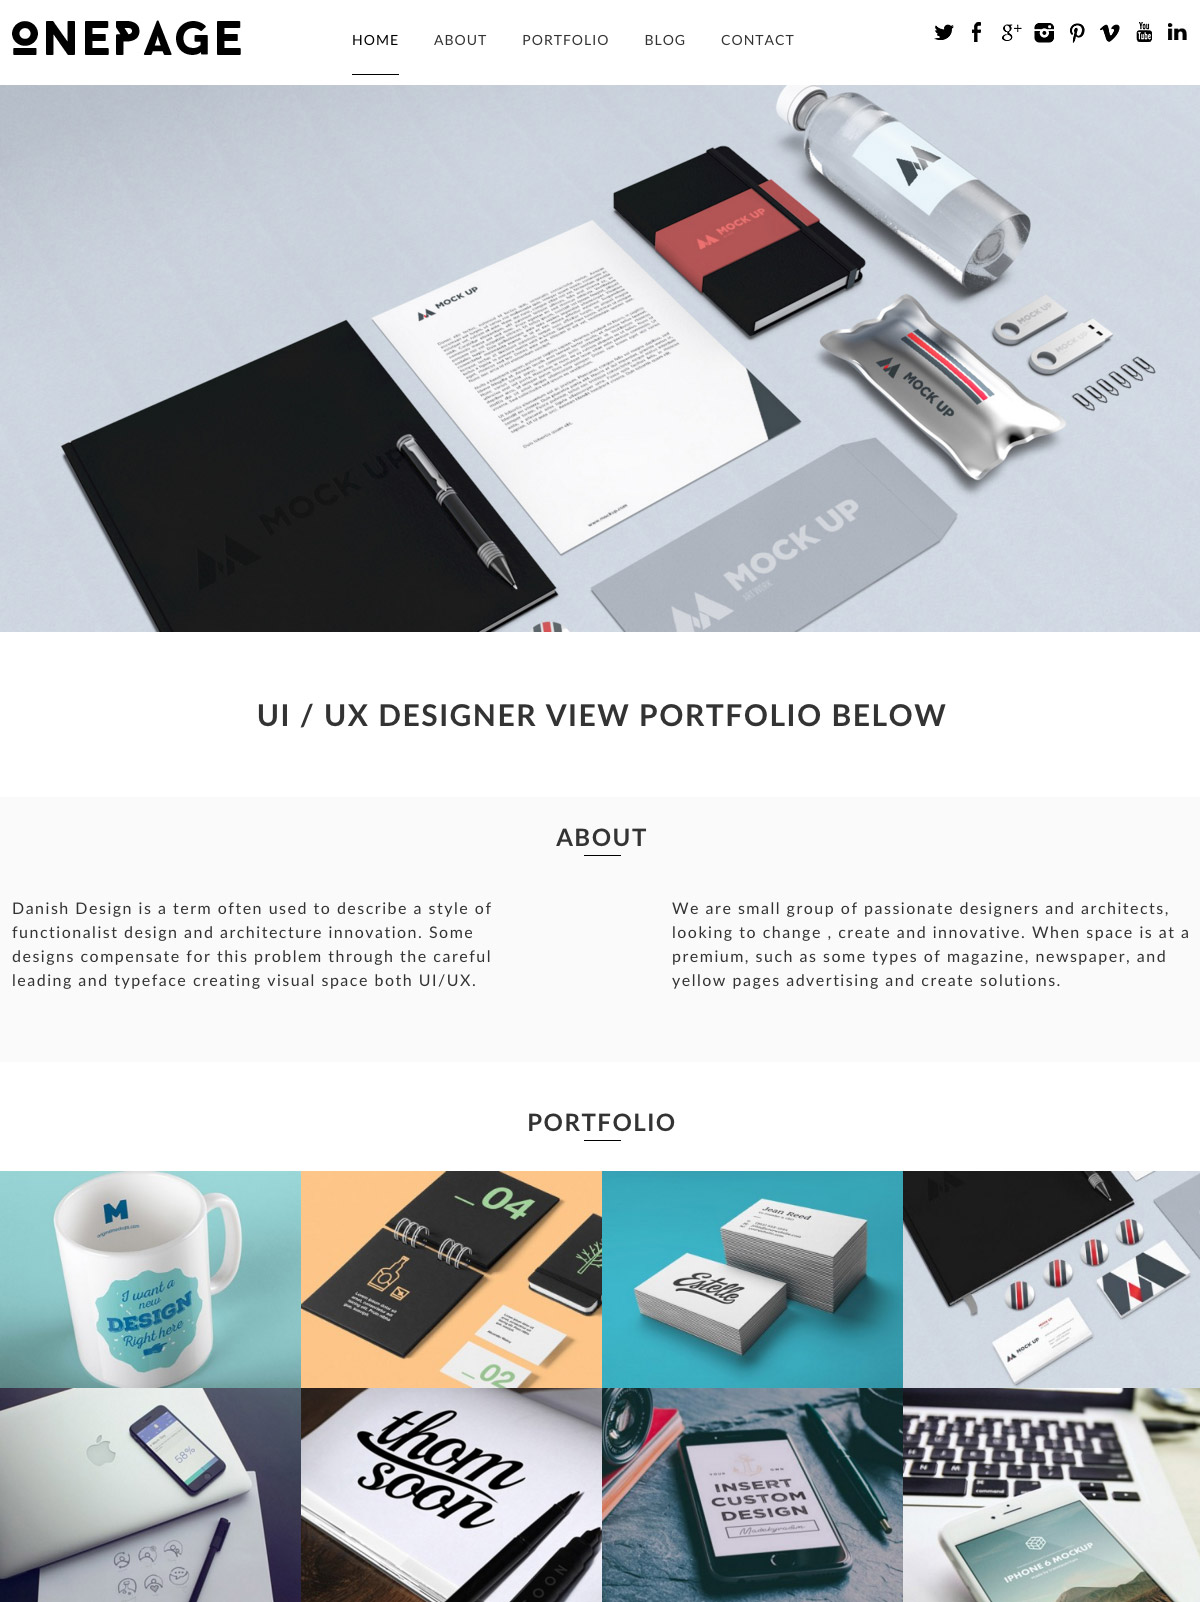 dessign-one-page-theme